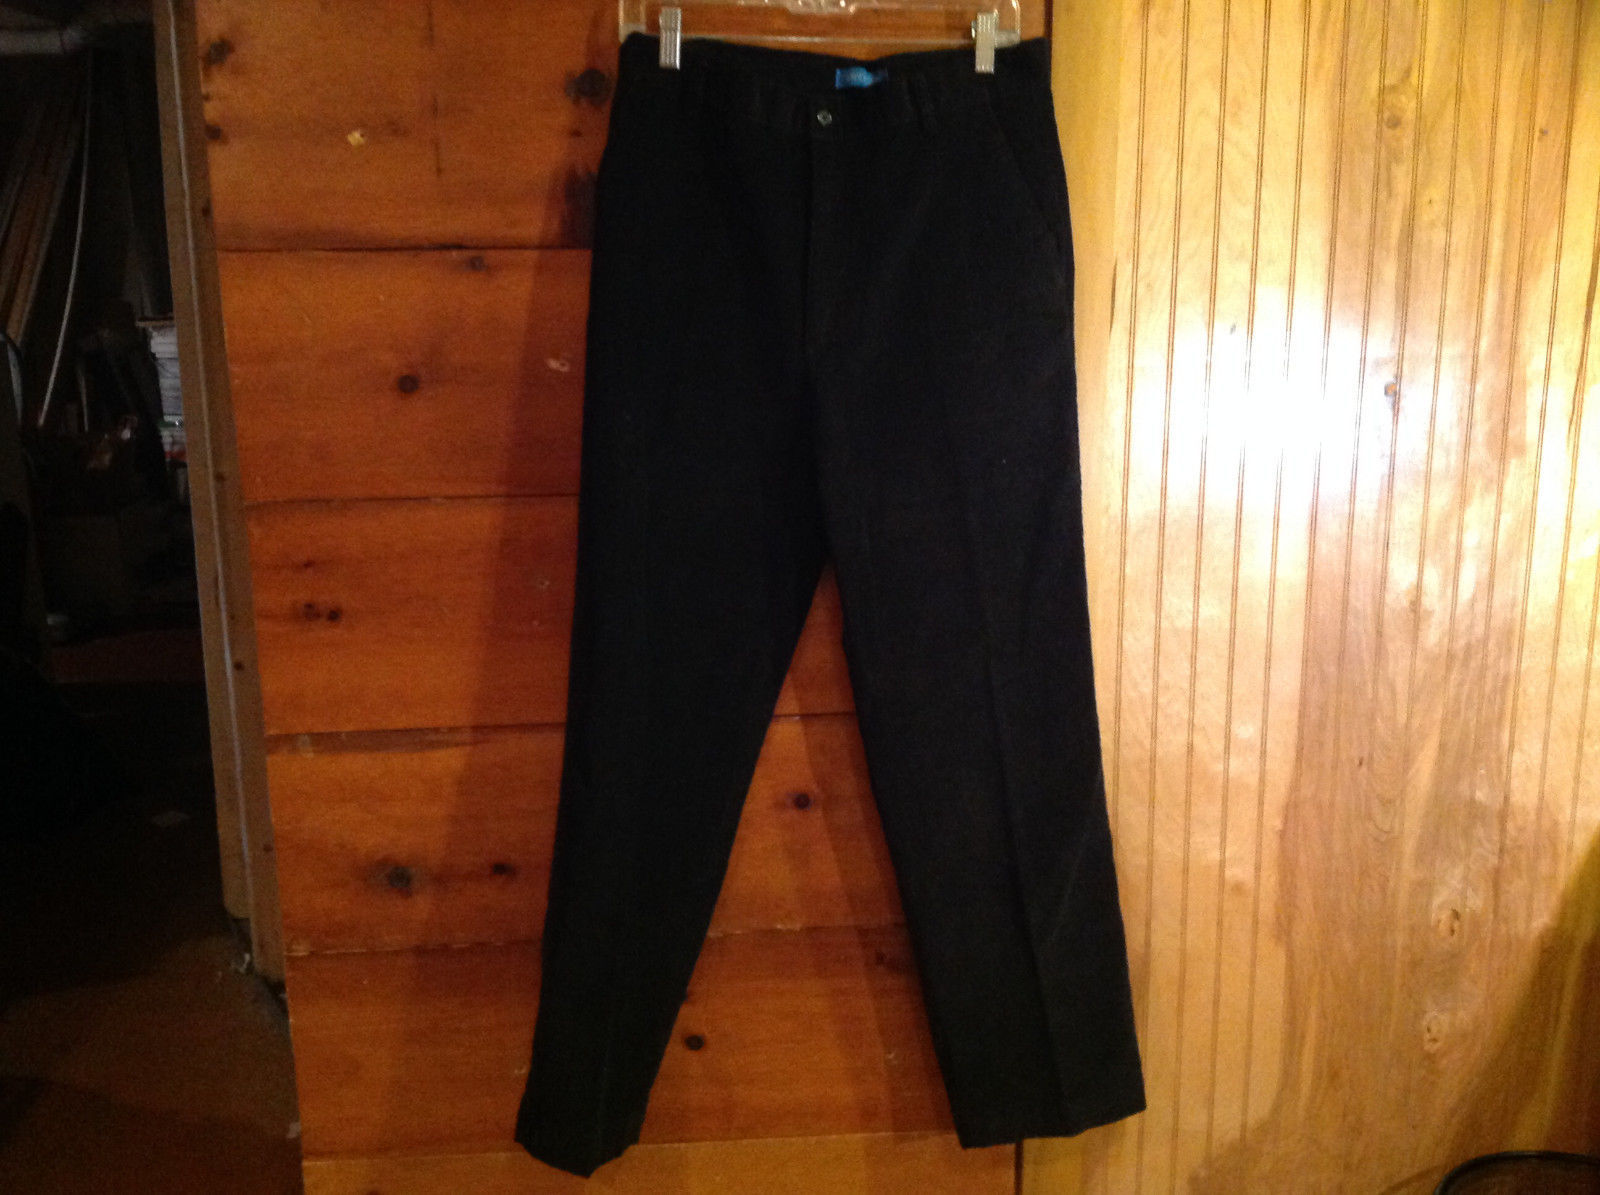 Black Corduroy 4 Pocket Pants by Savile Row Button Zipper Closure Size 32 x 30